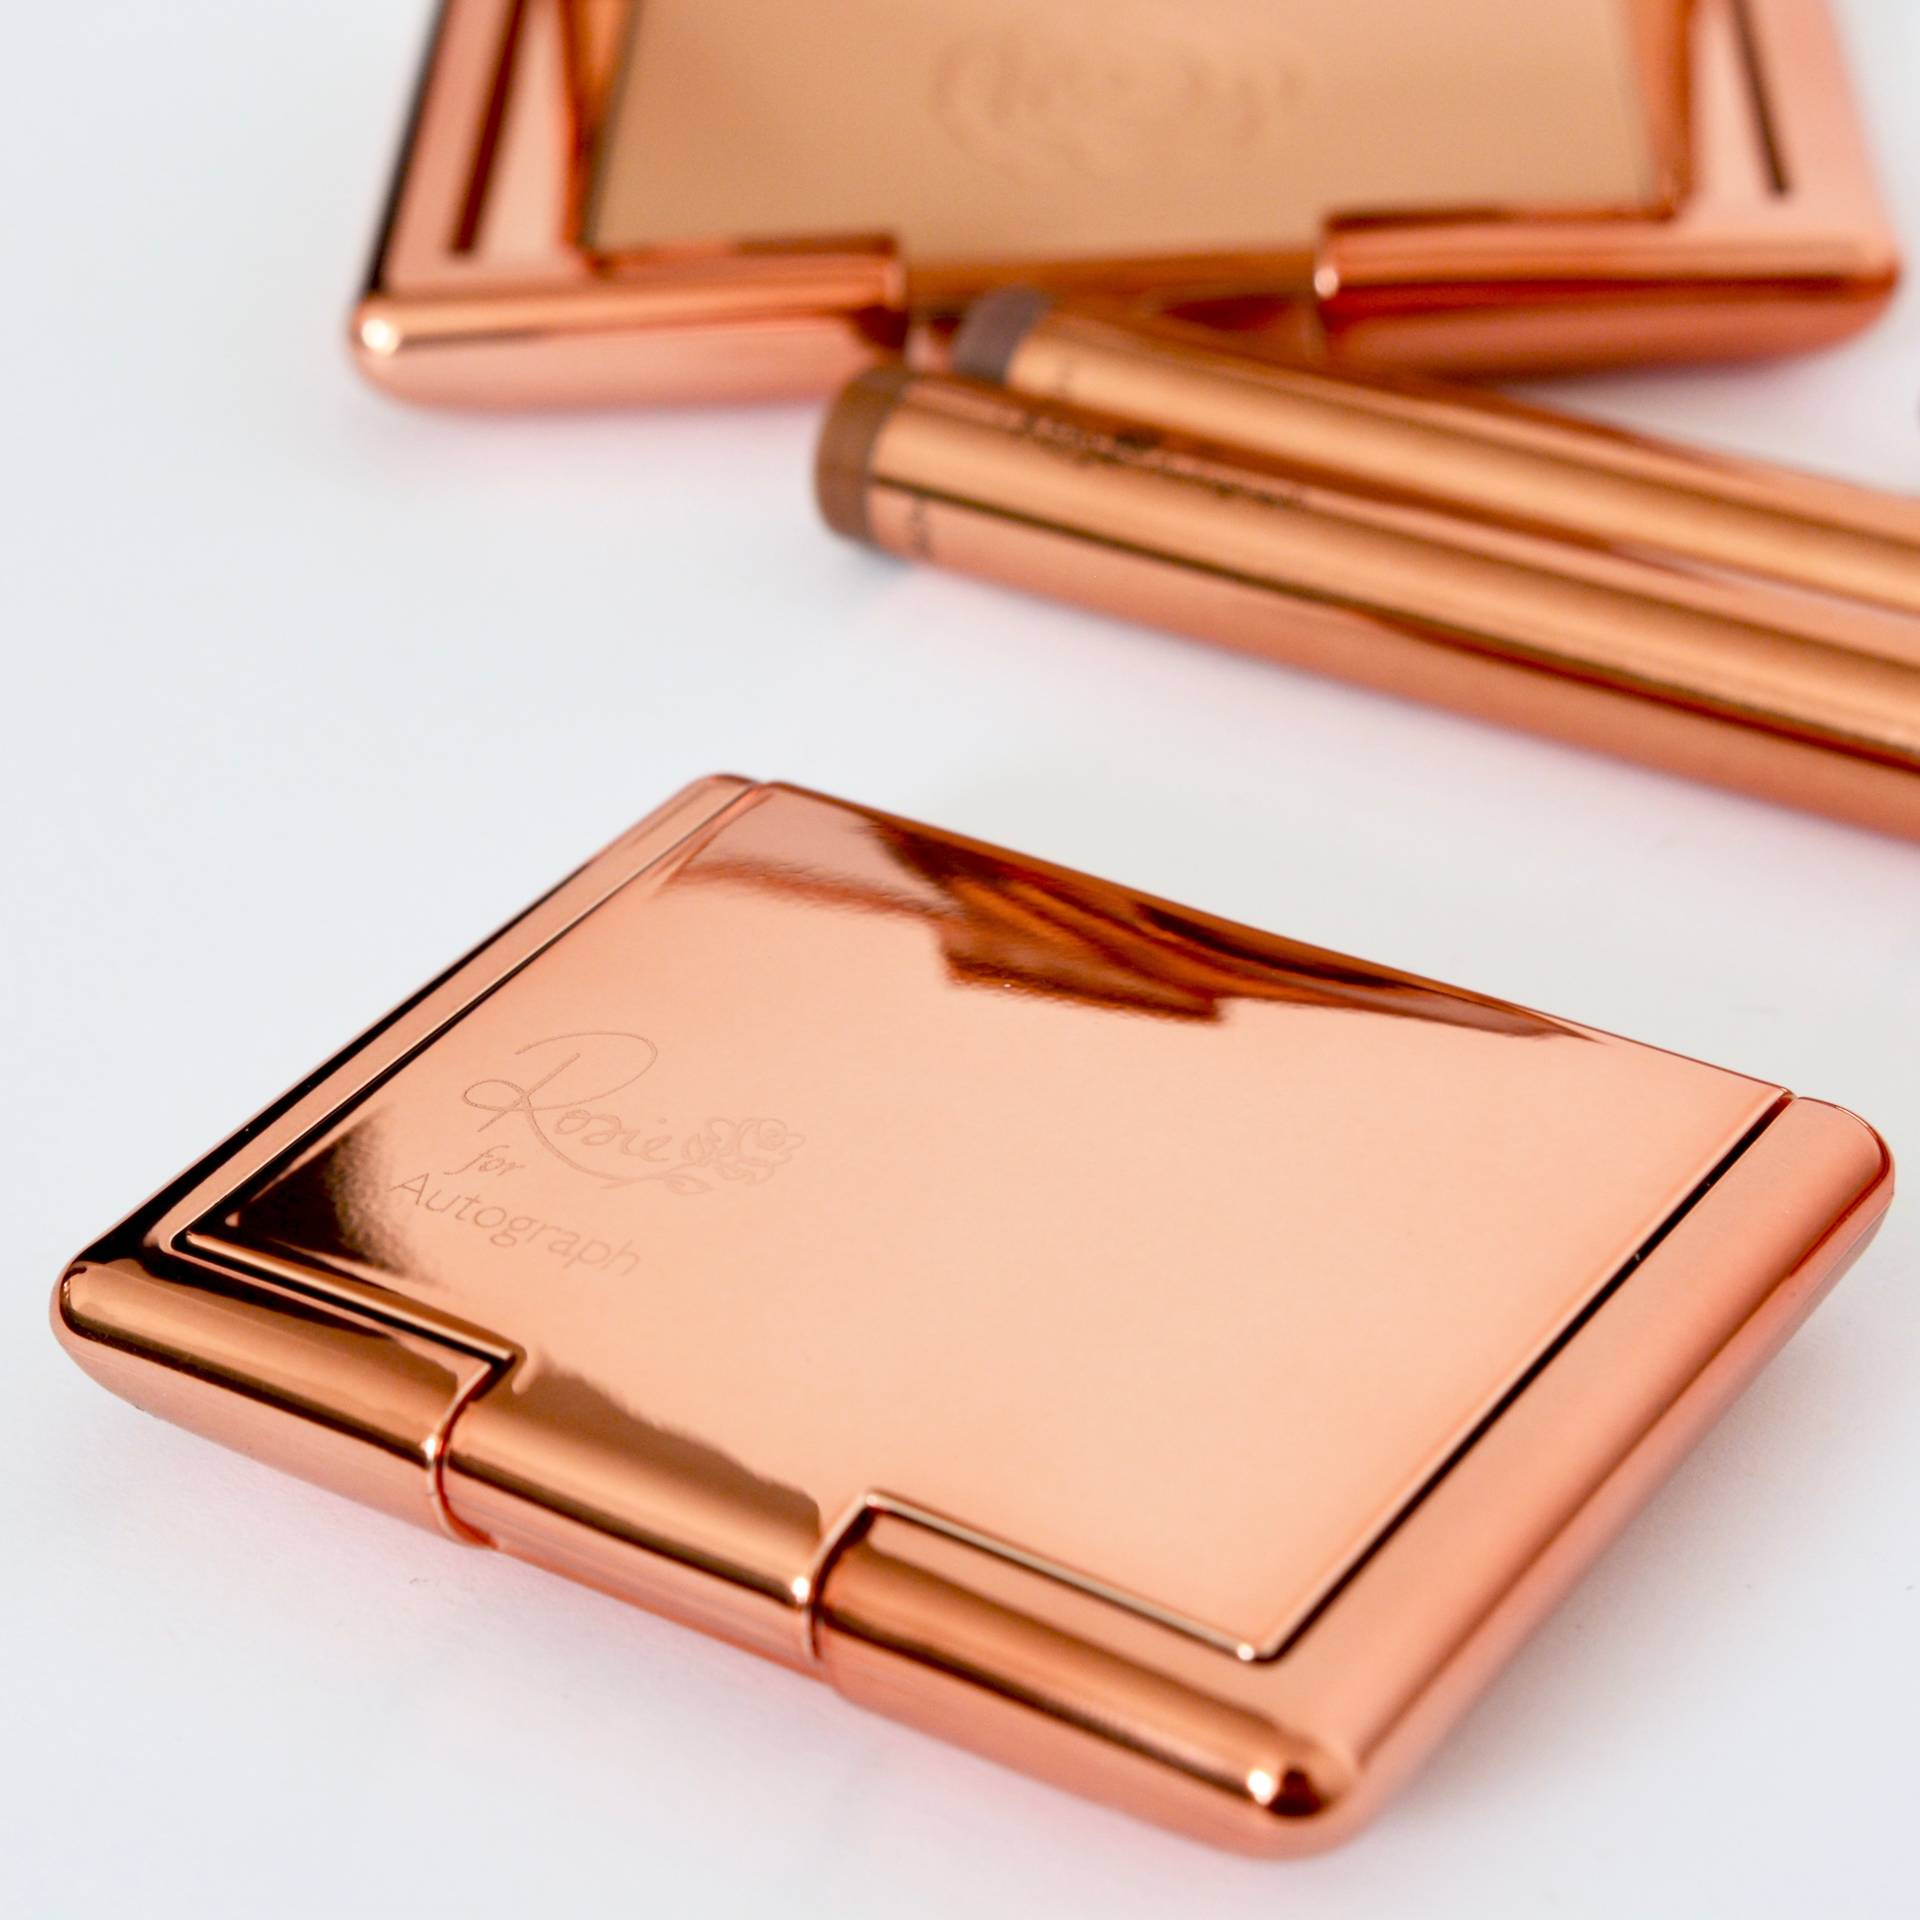 Rosie by Autograph - such beautiful rose gold packaging!